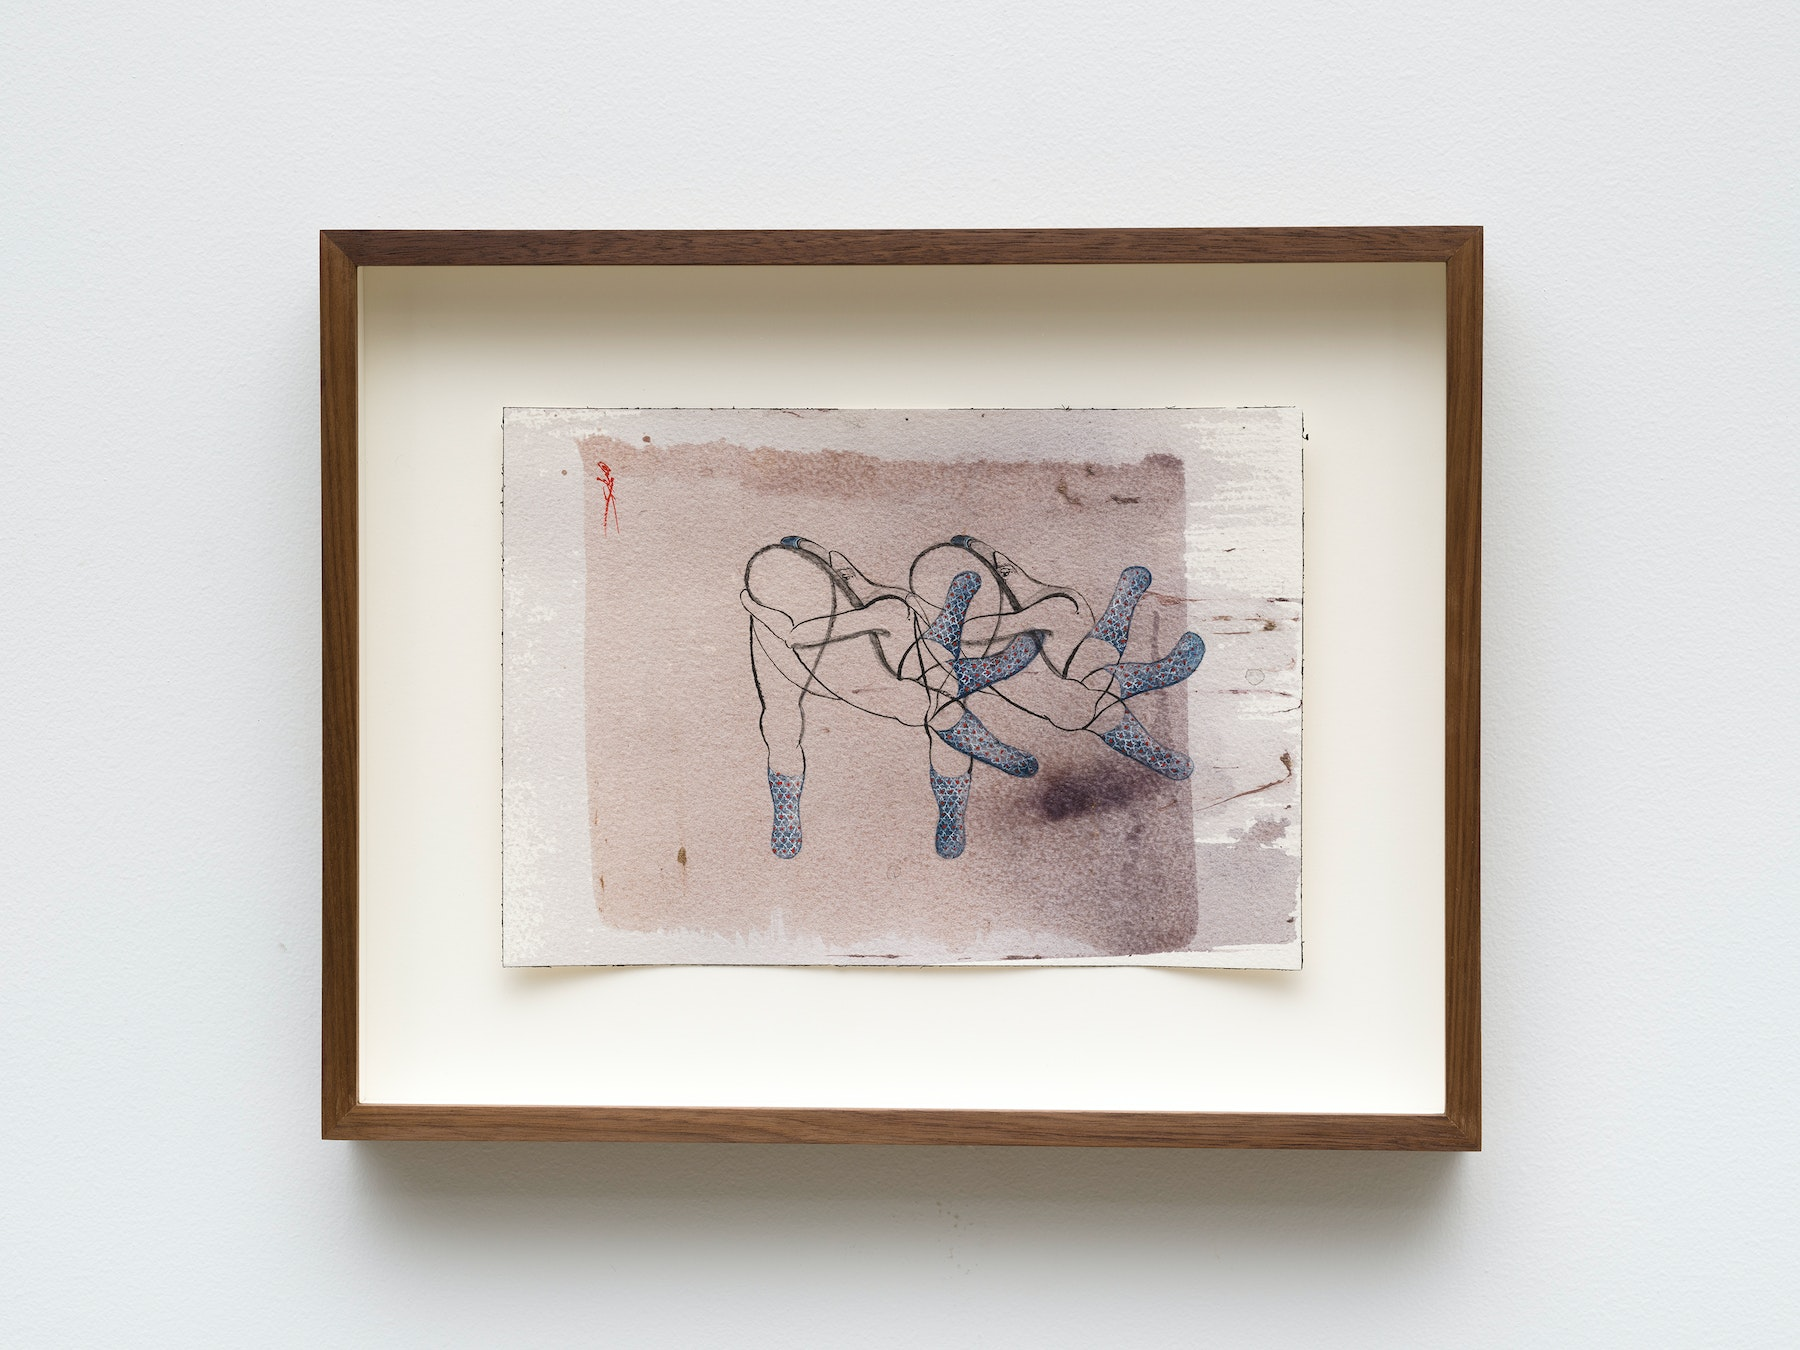 """Hayv Kahraman """"untitled,"""" 2021 Watercolor, gouache and dried pigment on paper 7"""" x 10"""" [HxW] (17.78 x 25.4 cm) paper size, 11 ¹⁄₂"""" x 14 ¹⁄₂"""" x 2"""" [HxWxD] (29.21 x 36.83 x 5.08 cm) framed Inventory #KAR189 Courtesy of the artist and Vielmetter Los Angeles Photo credit: Jeff Mclane"""